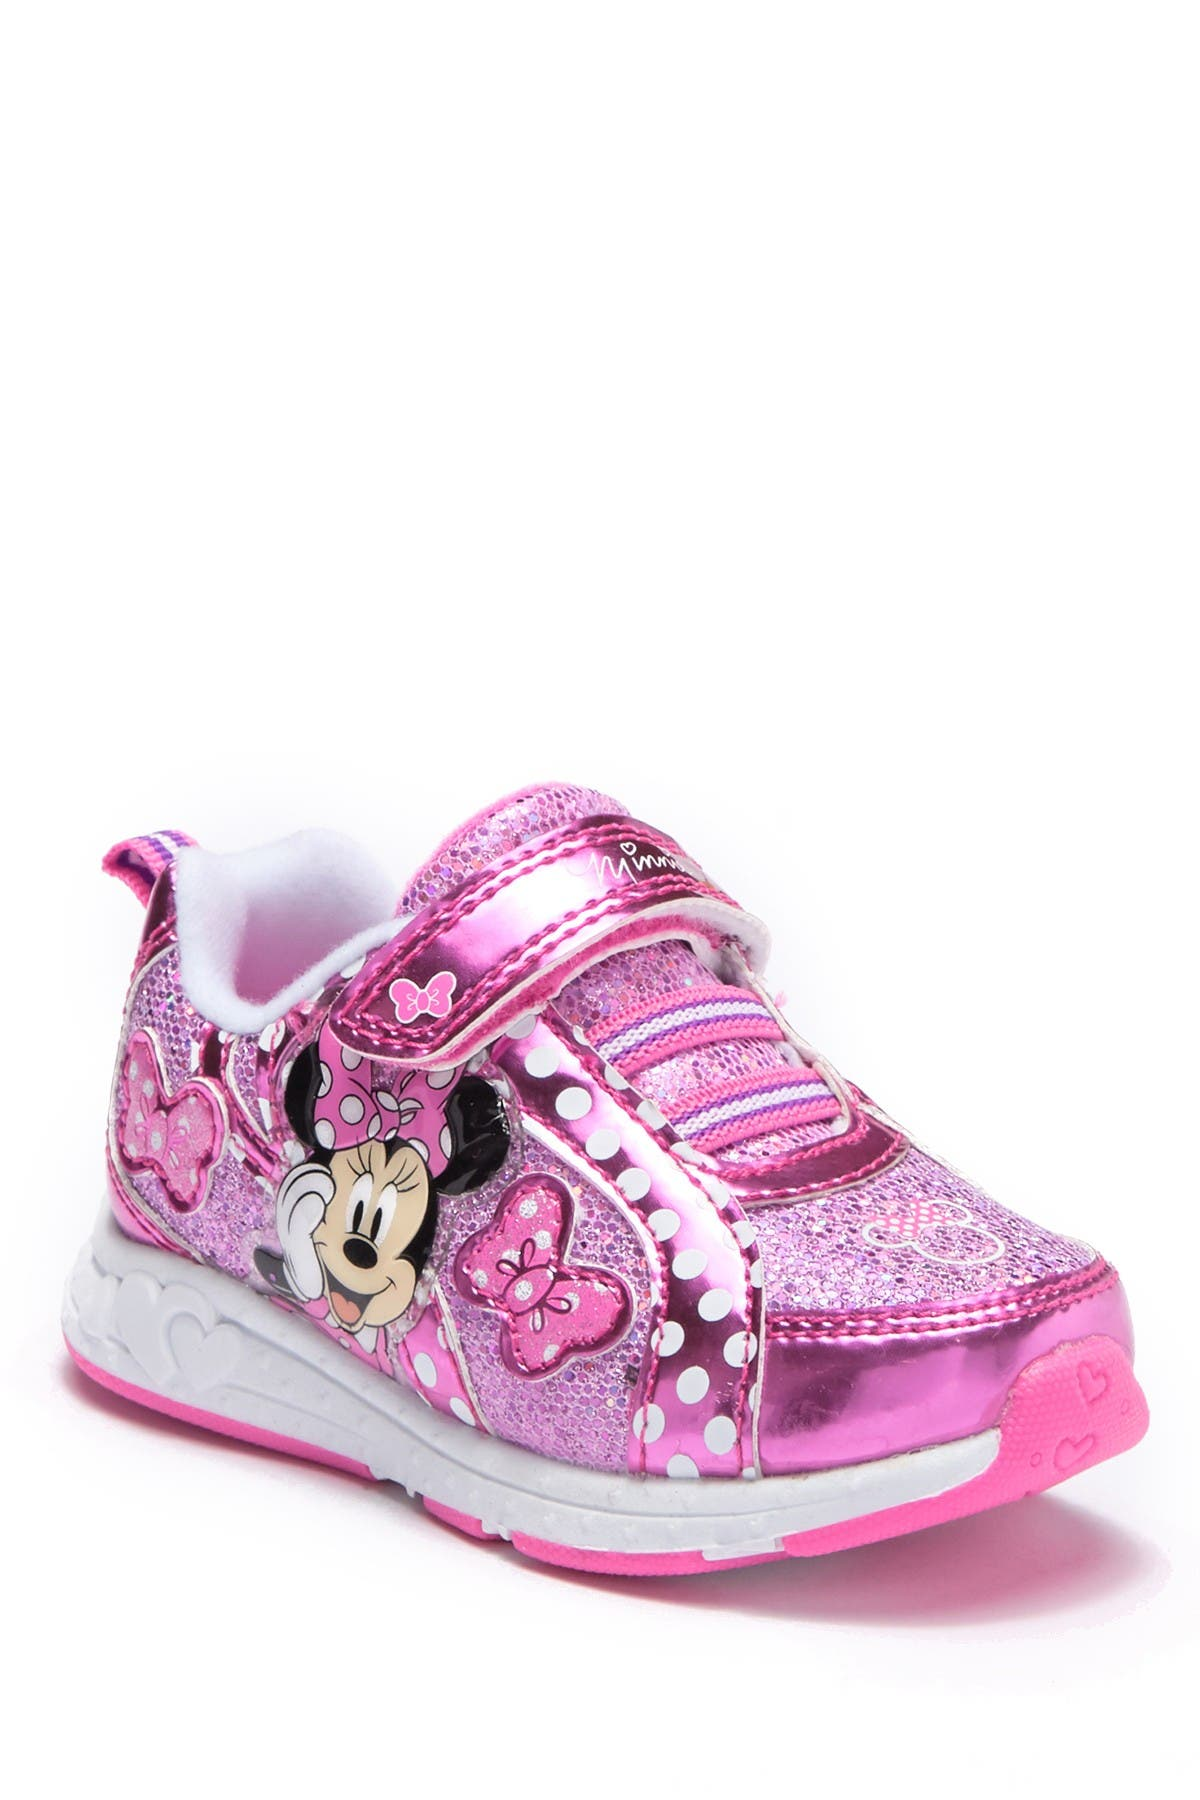 Josmo   Minnie Mouse Light-Up Sneaker